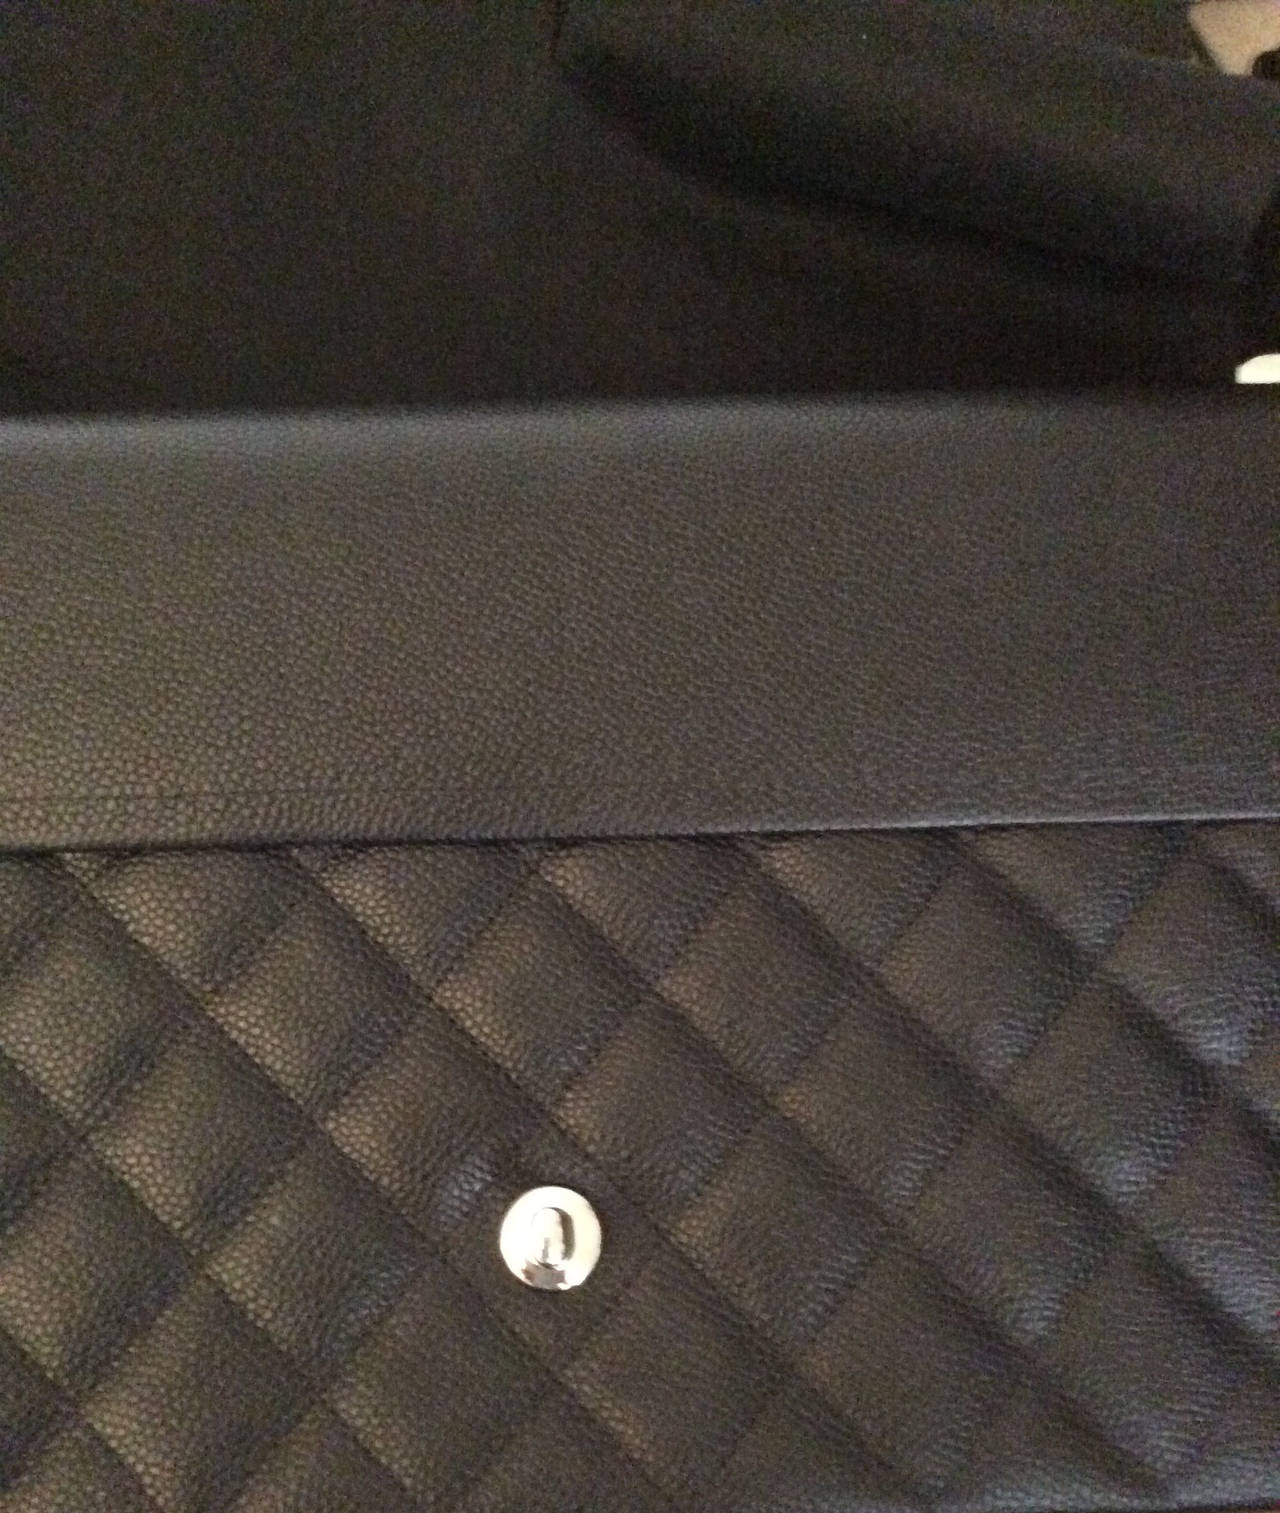 New Chanel Classic Double Flap Maxi Bag - Caviar 5